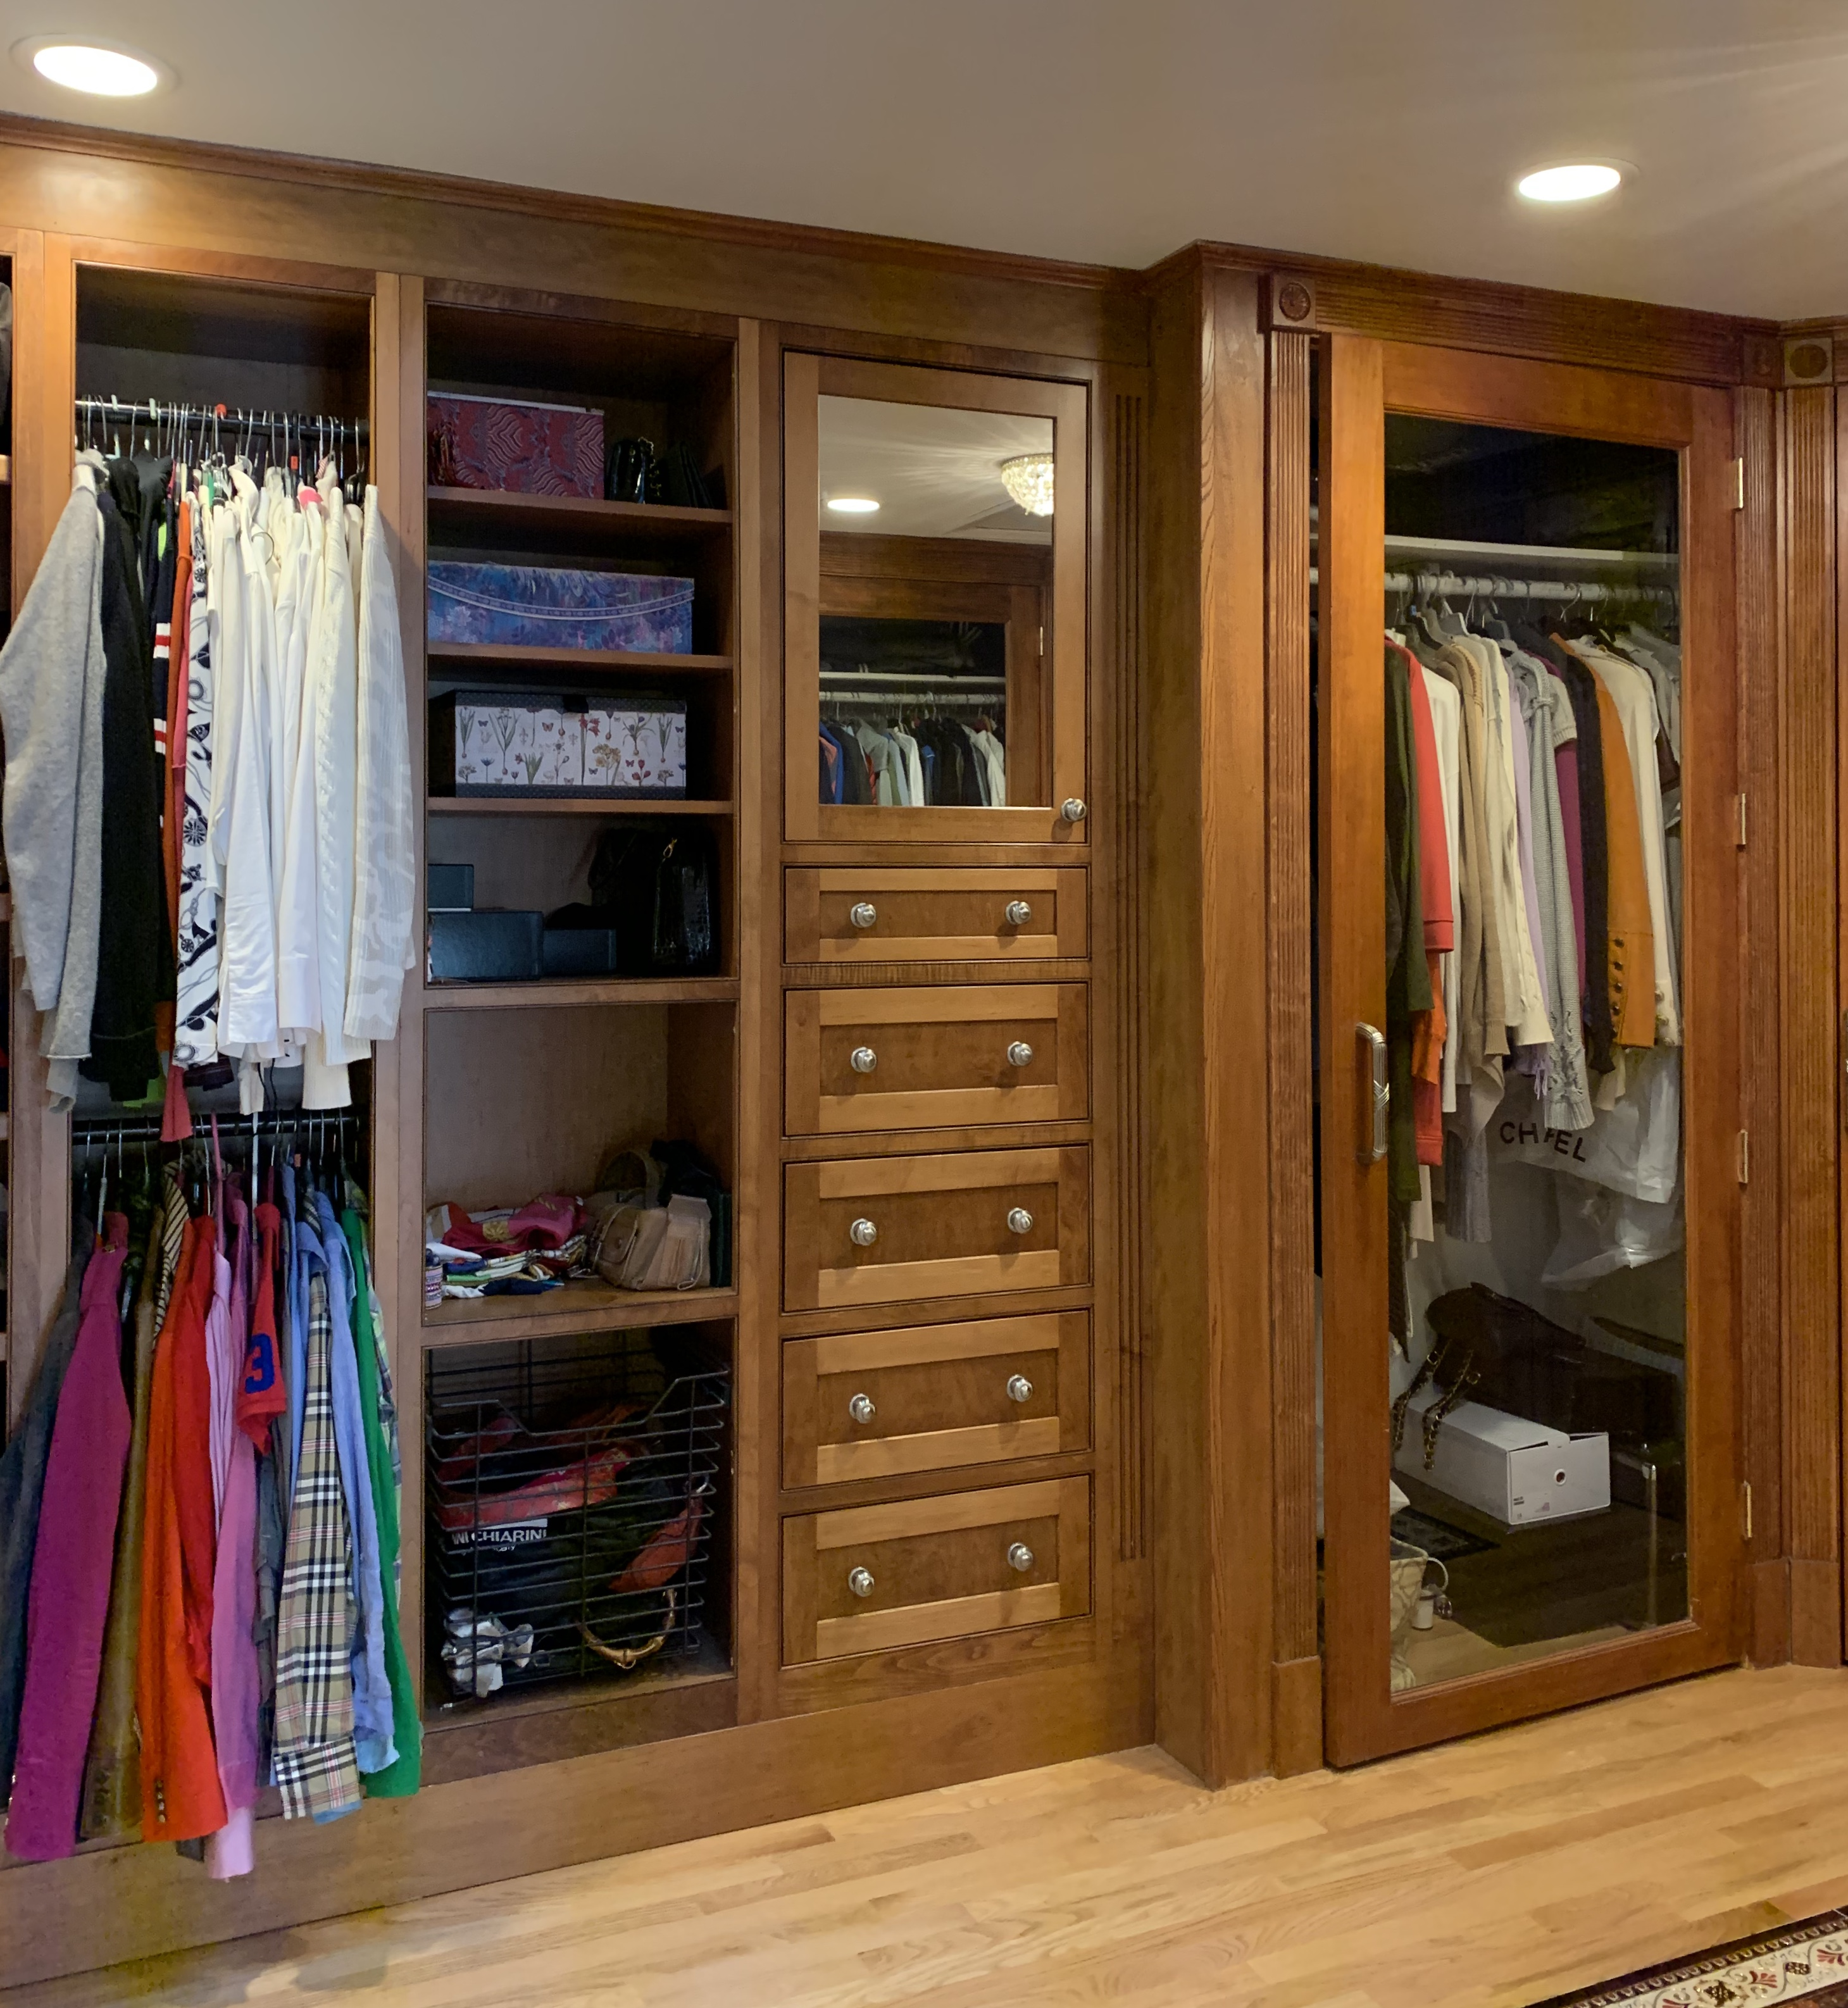 Homes With Walk-In Closets In Washington, DC